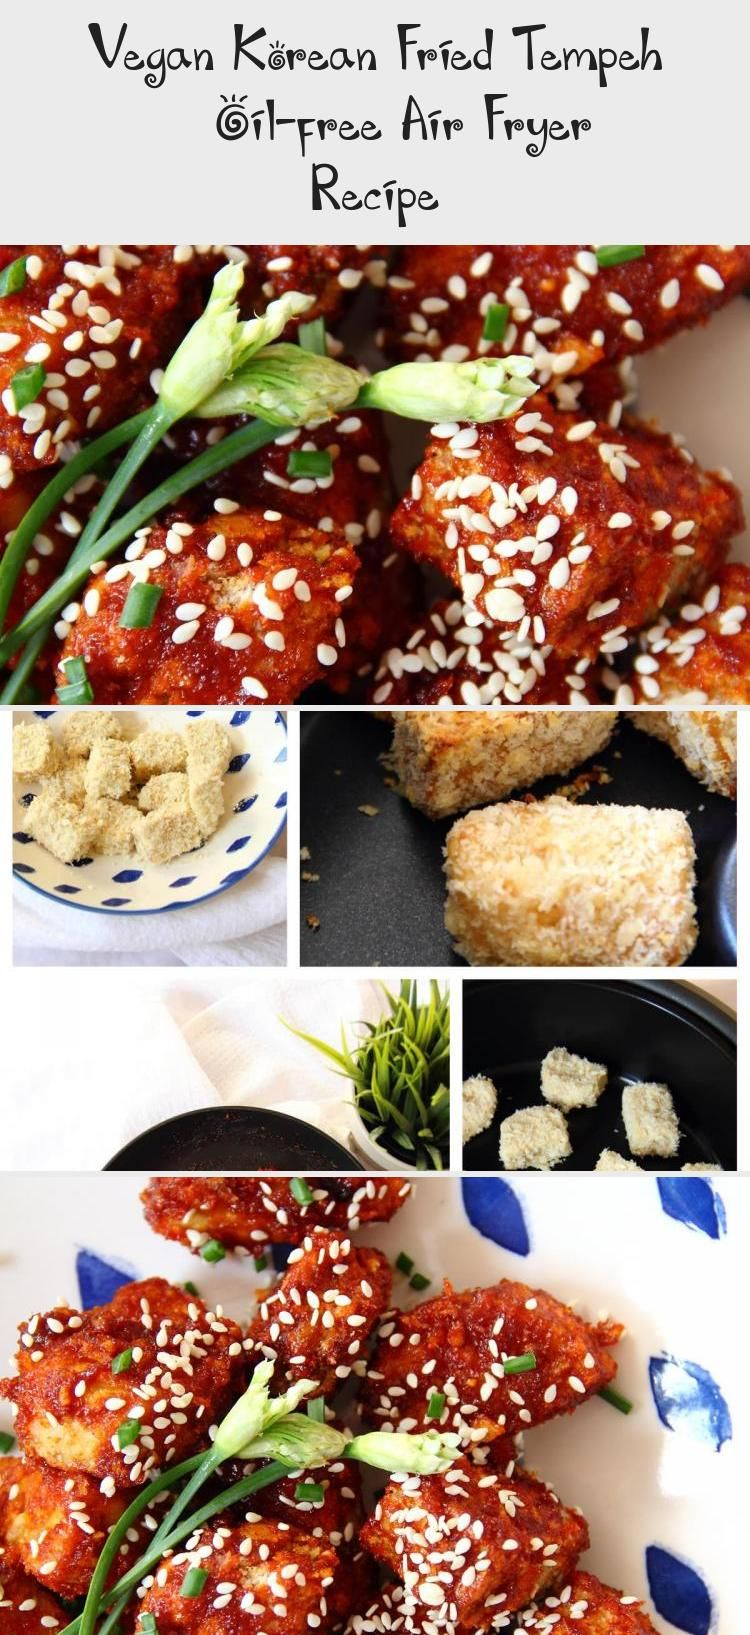 Vegan Korean Fried Tempeh Oilfree Air Fryer Recipe